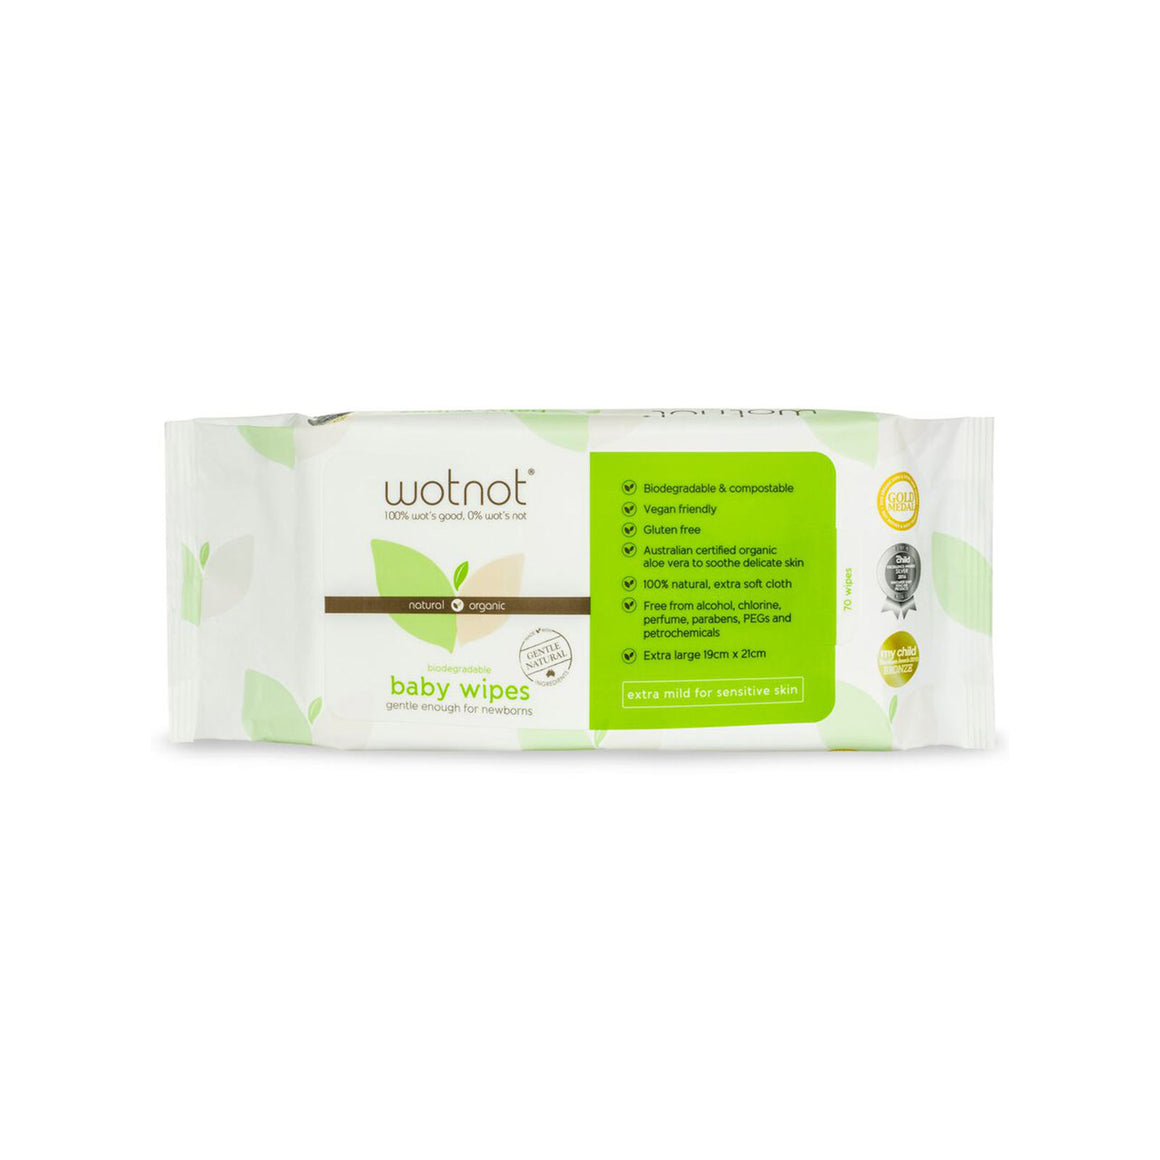 Wotnot Biodegradable Baby Wipes - 70pk